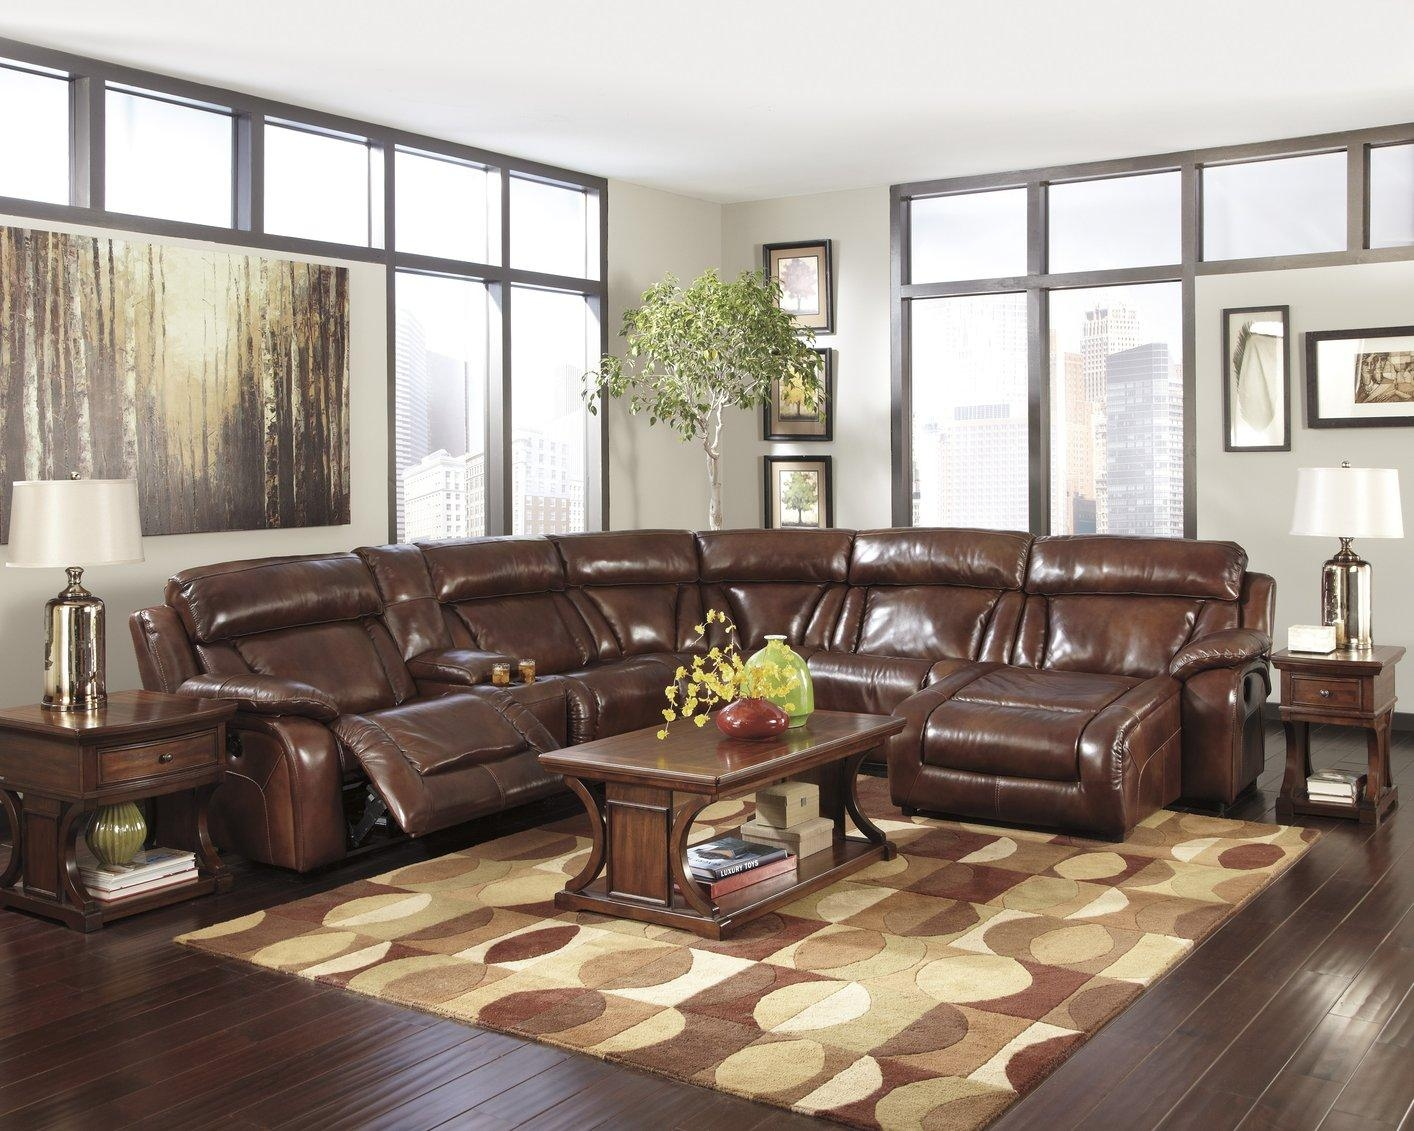 Sectional Sofa Clearance: The Best Way To Get High Quality Sofa In For High Quality Leather Sectional (View 9 of 20)